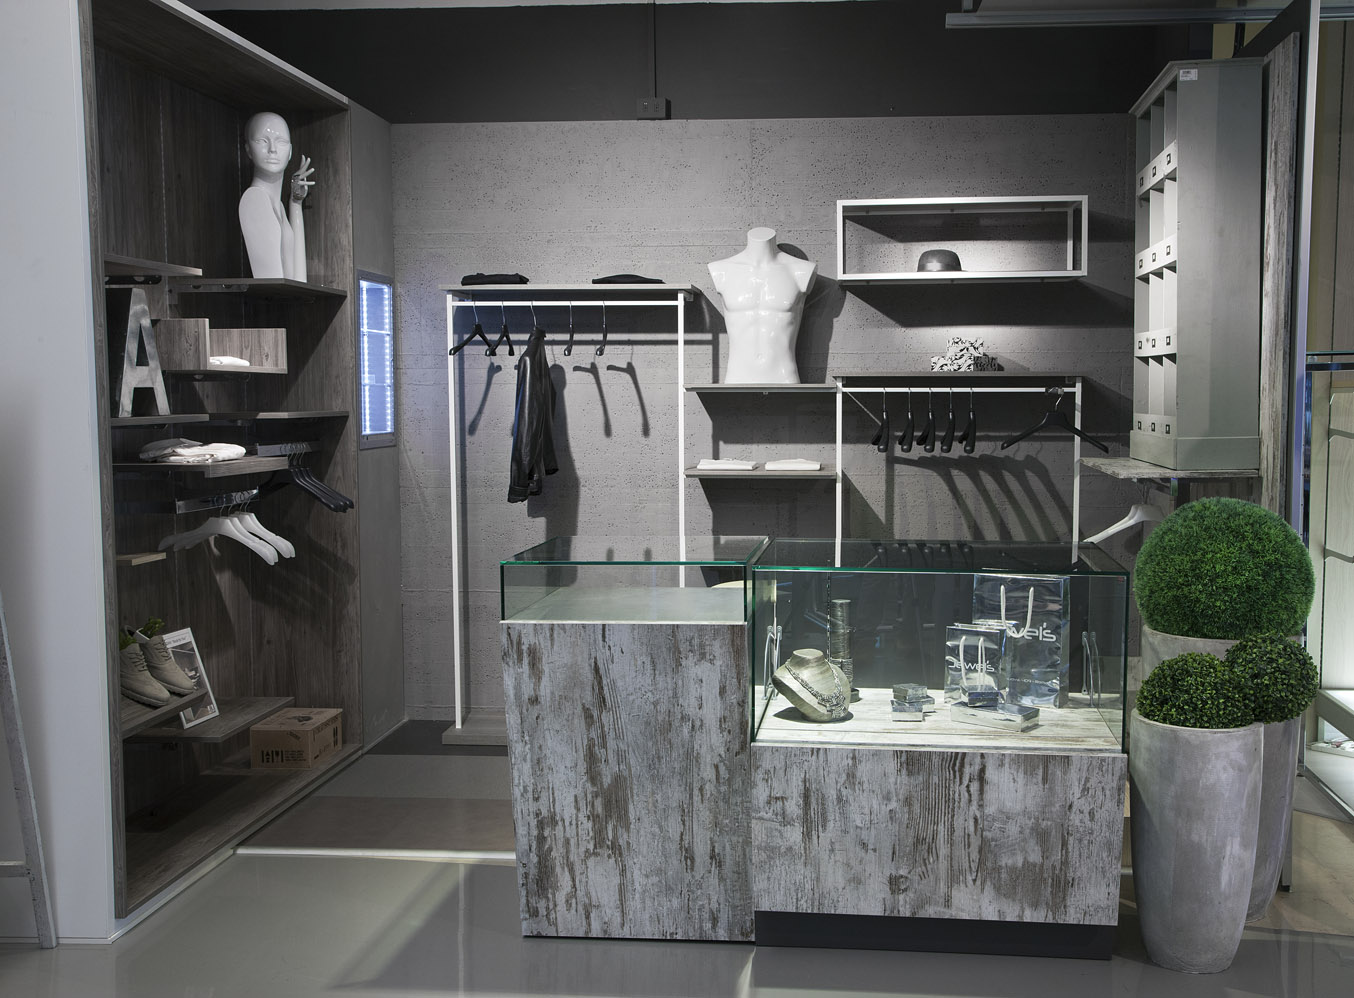 Intersystem group arredo contract commercity ingrosso roma for Arredo group